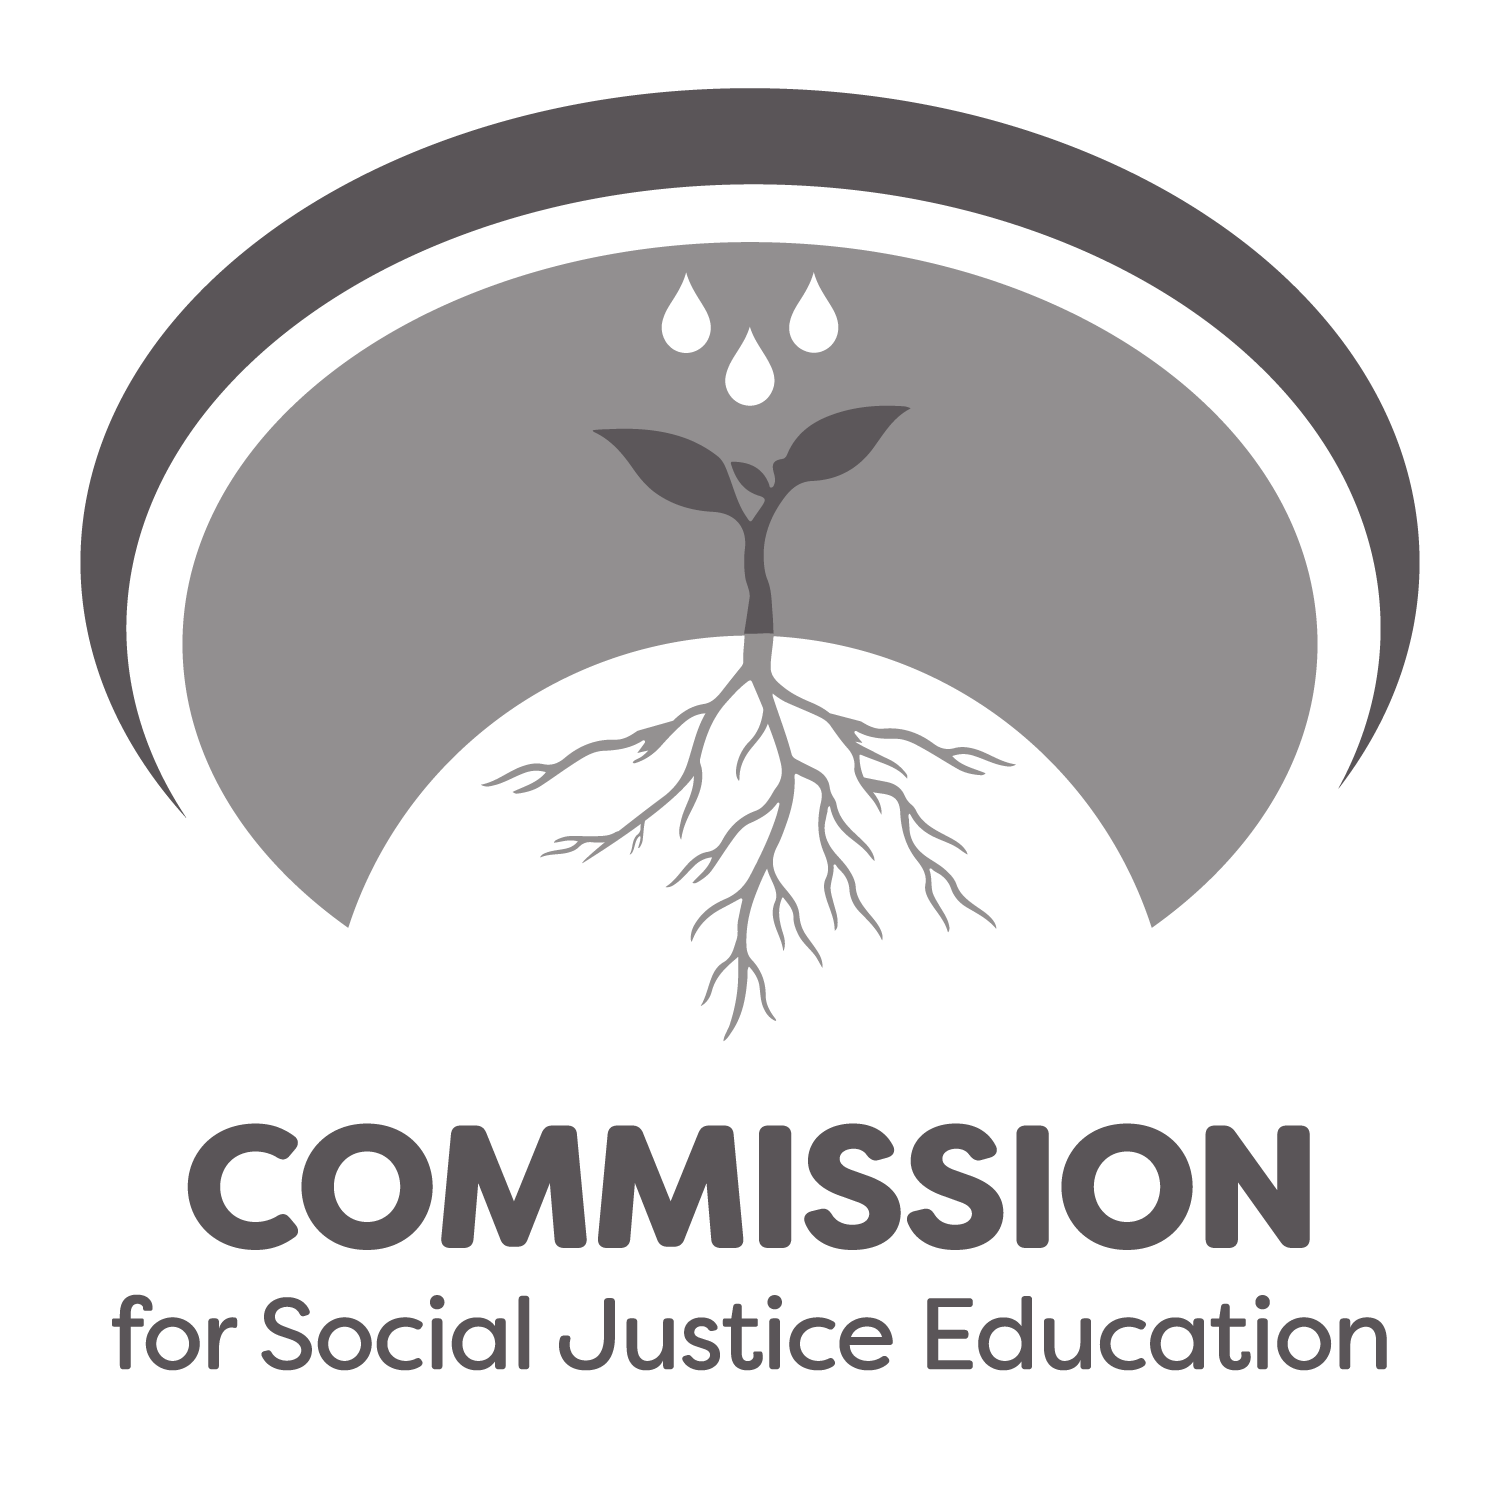 Commission for Social Justice Education logo